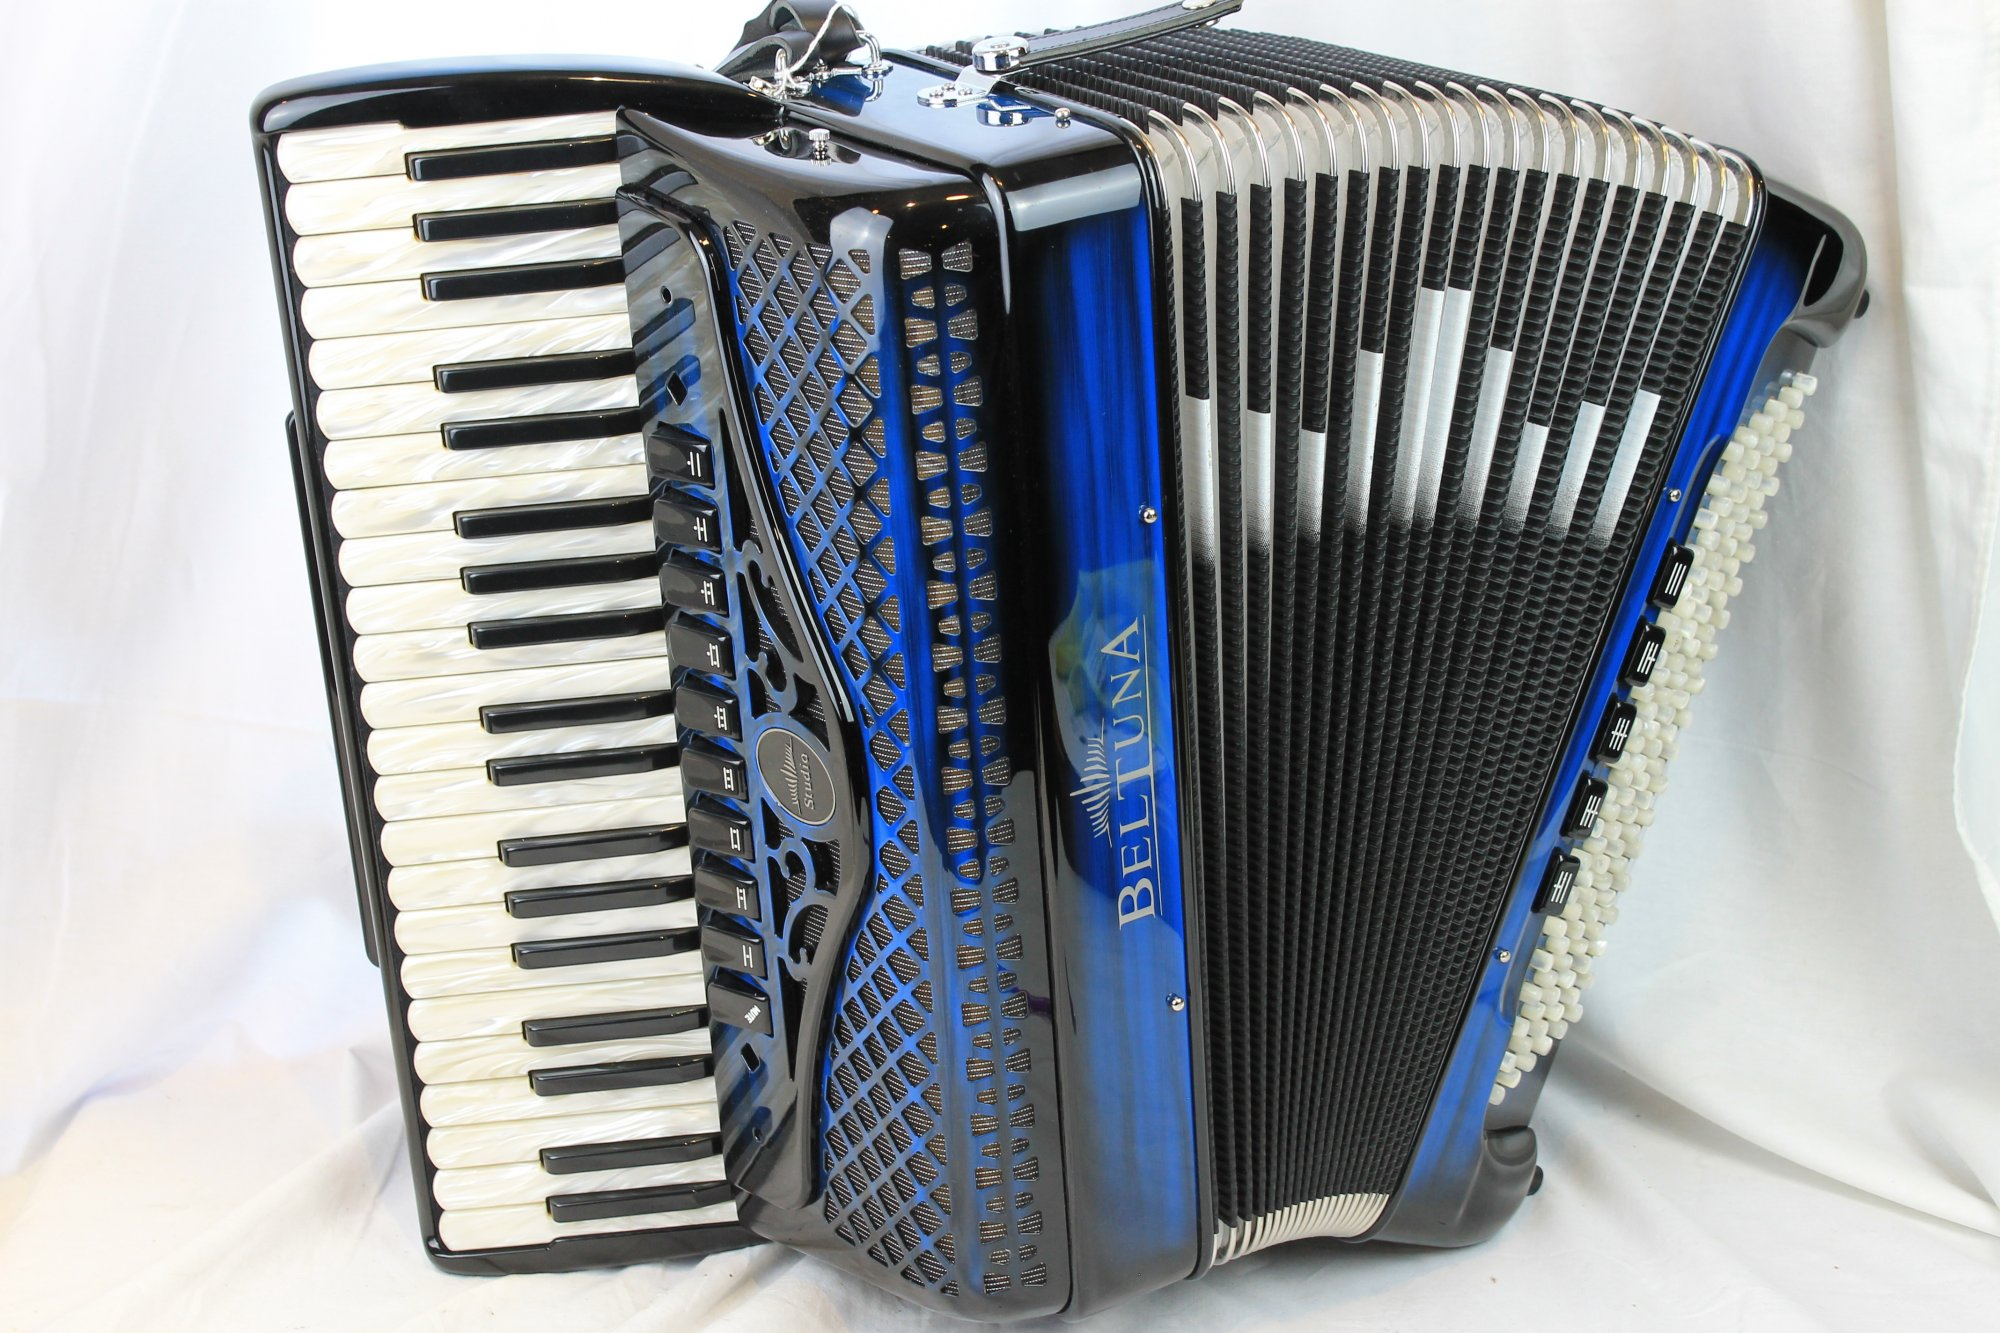 NEW Blue Shadow Beltuna Studio IV Slender Piano Accordion LMMM 41 120